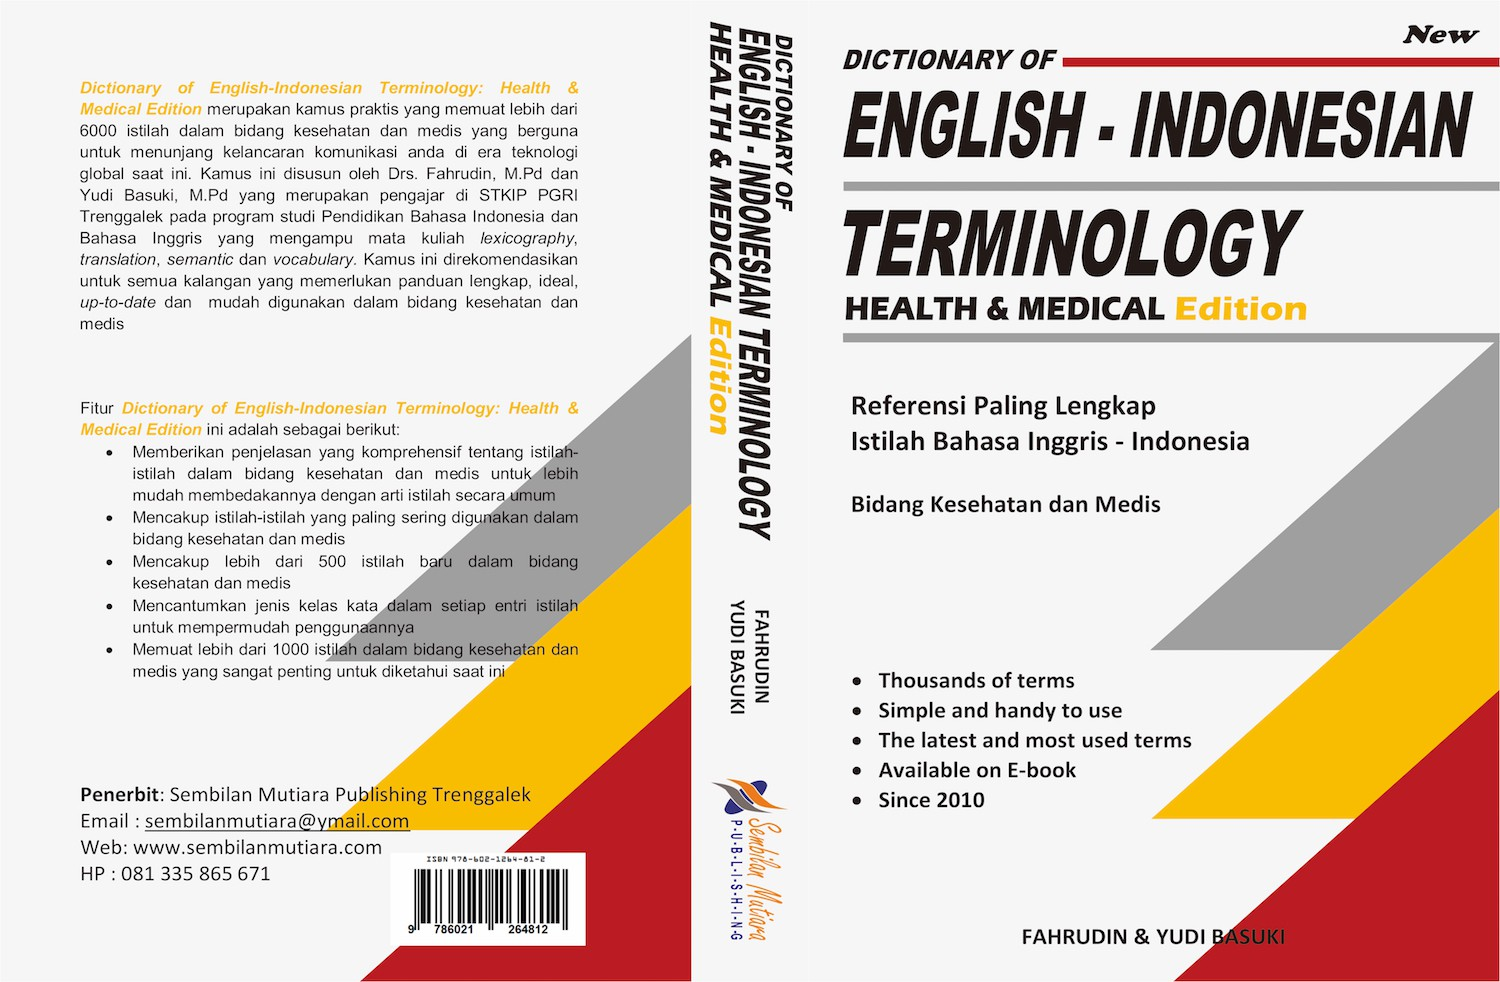 DICTIONARY OF ENGLISH INDONESIAN TERMINOLOGY: HEALTH & MEDICAL EDITION